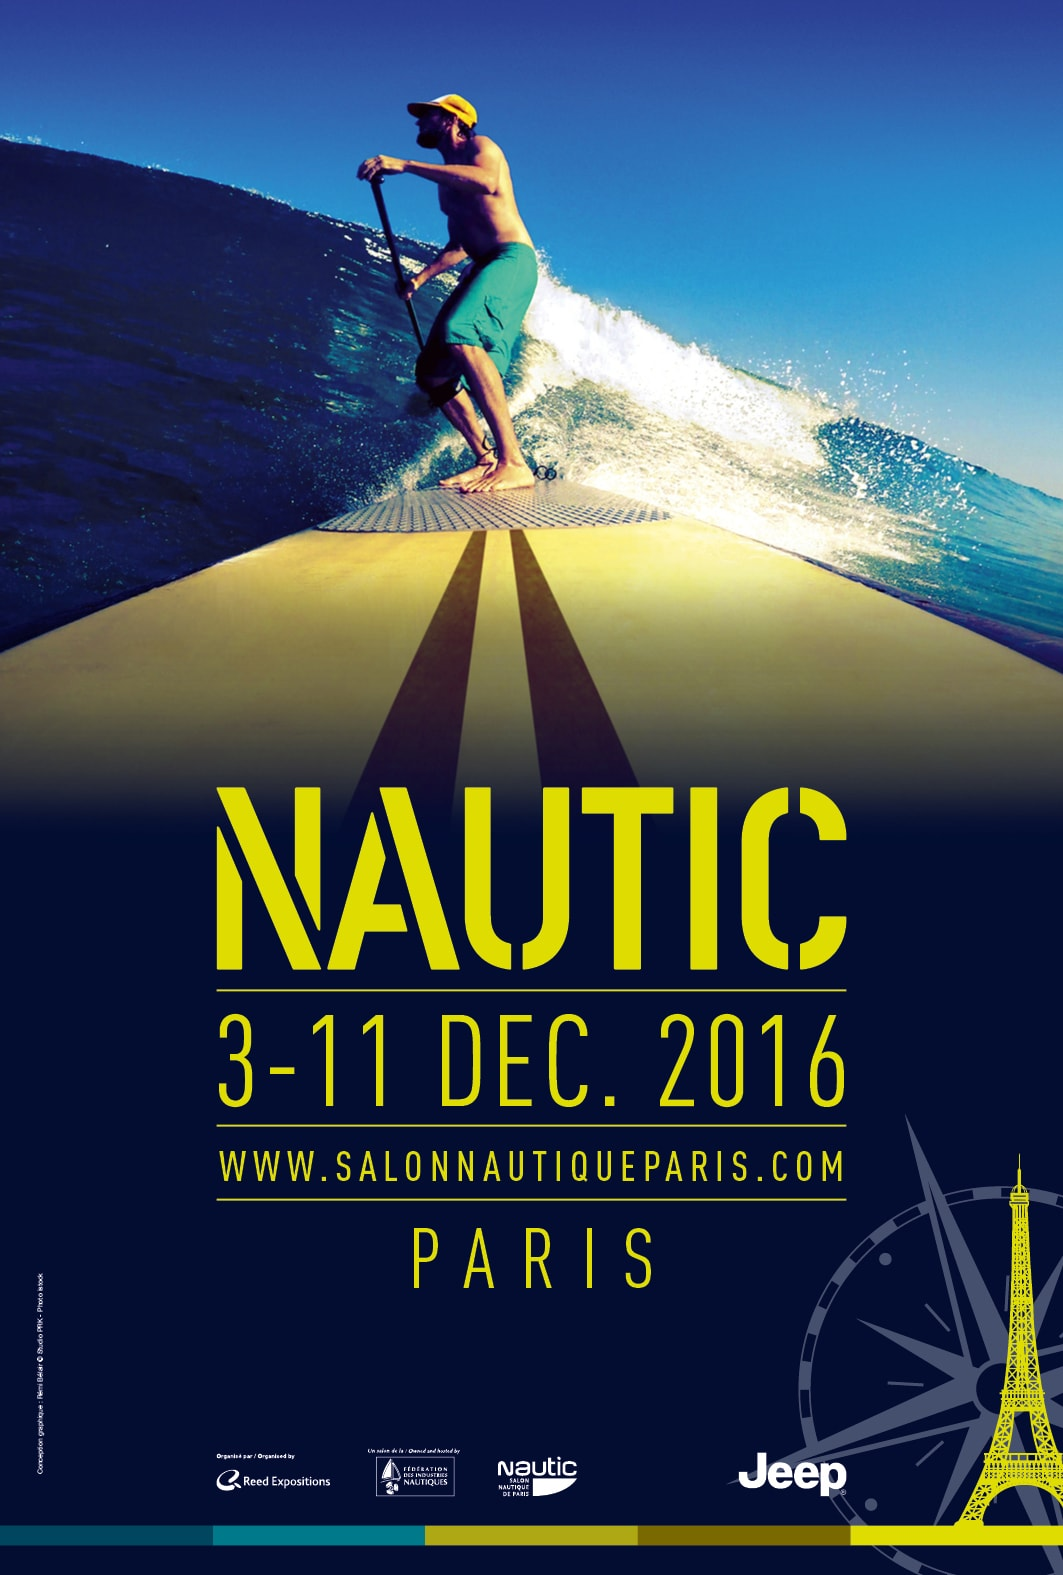 Salon Nautique International De Paris Salon Nautique 2016 Où Dormir Le Magazine